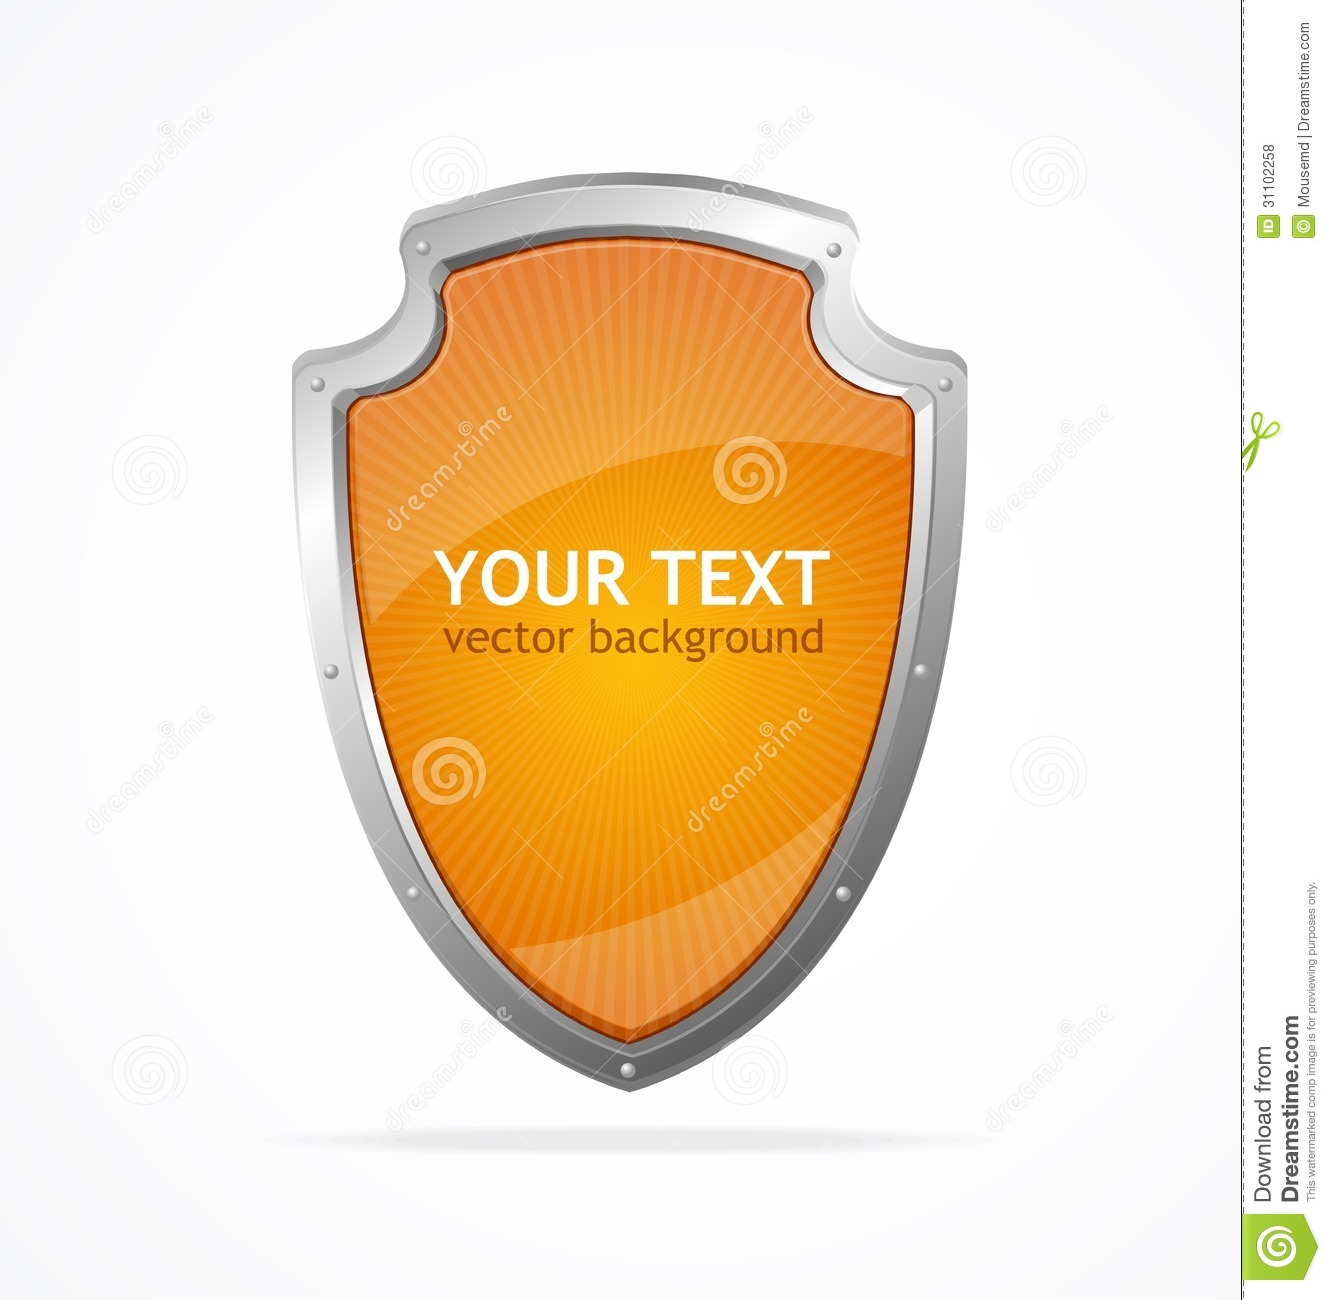 Vector Metal Shield Lke Speech Templates For Text Royalty